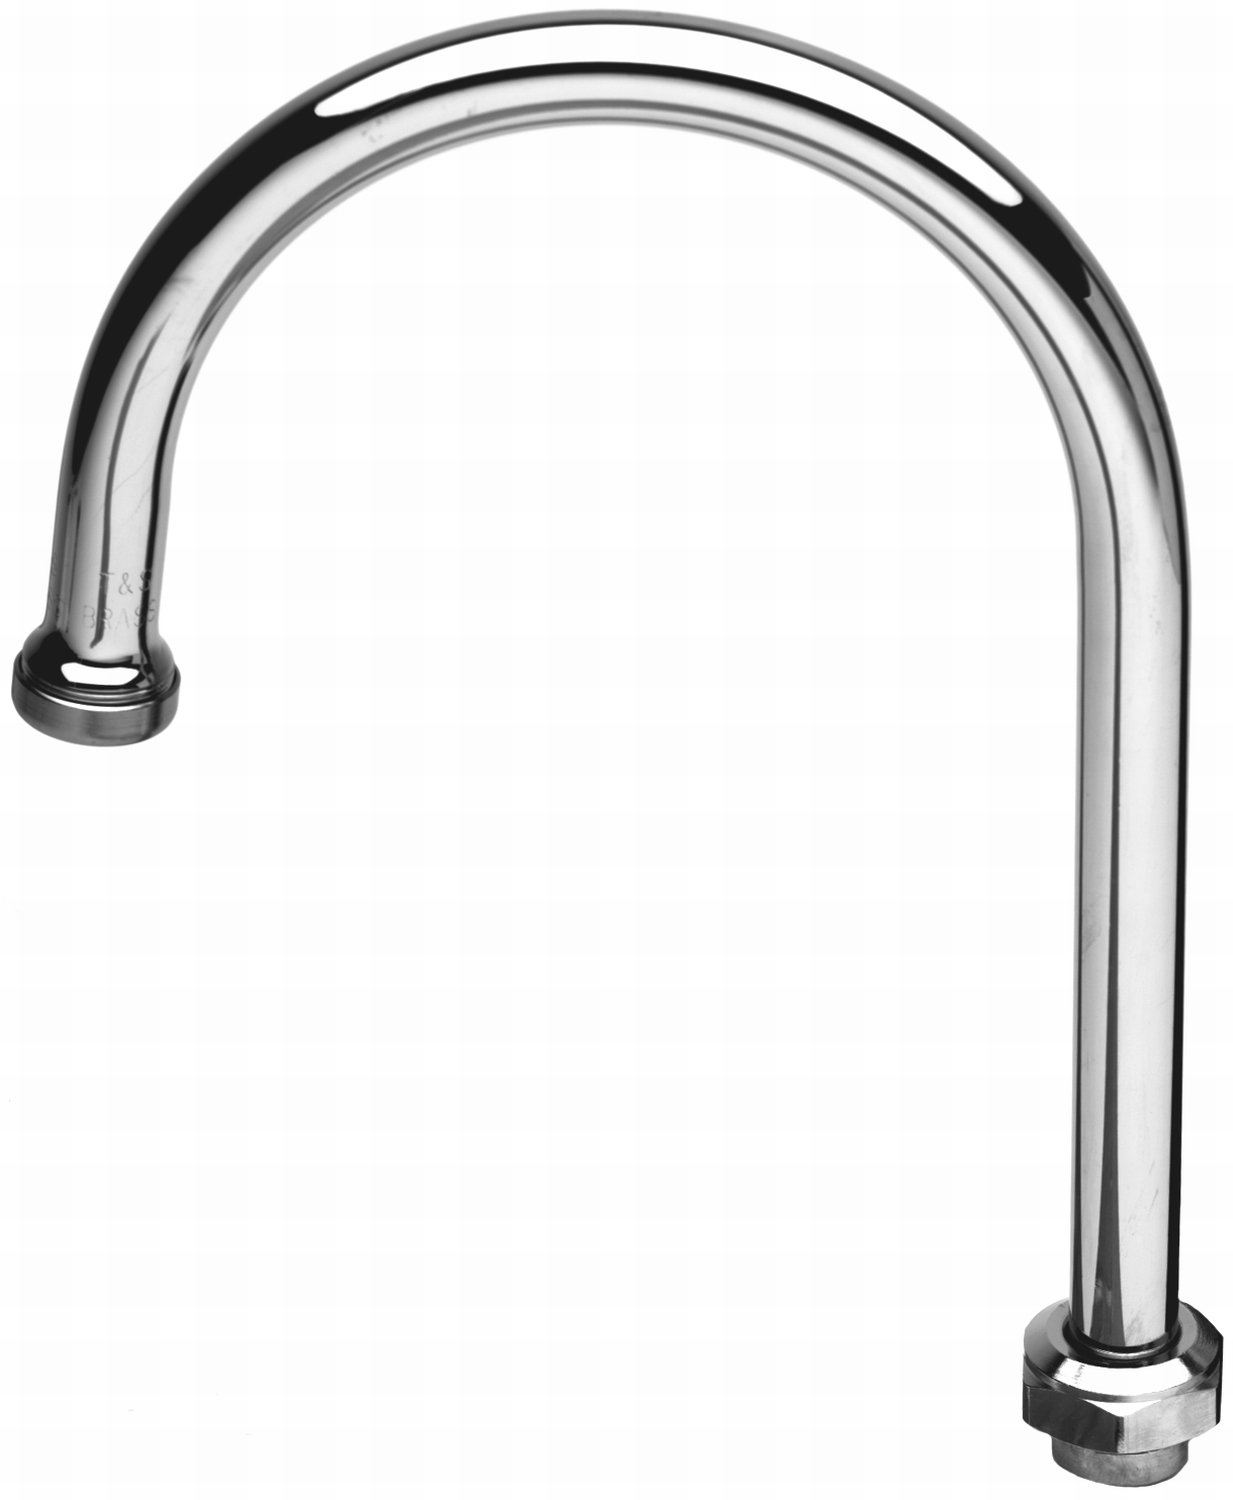 TS Brass 133X Swivel Gooseneck Spout, Chrome